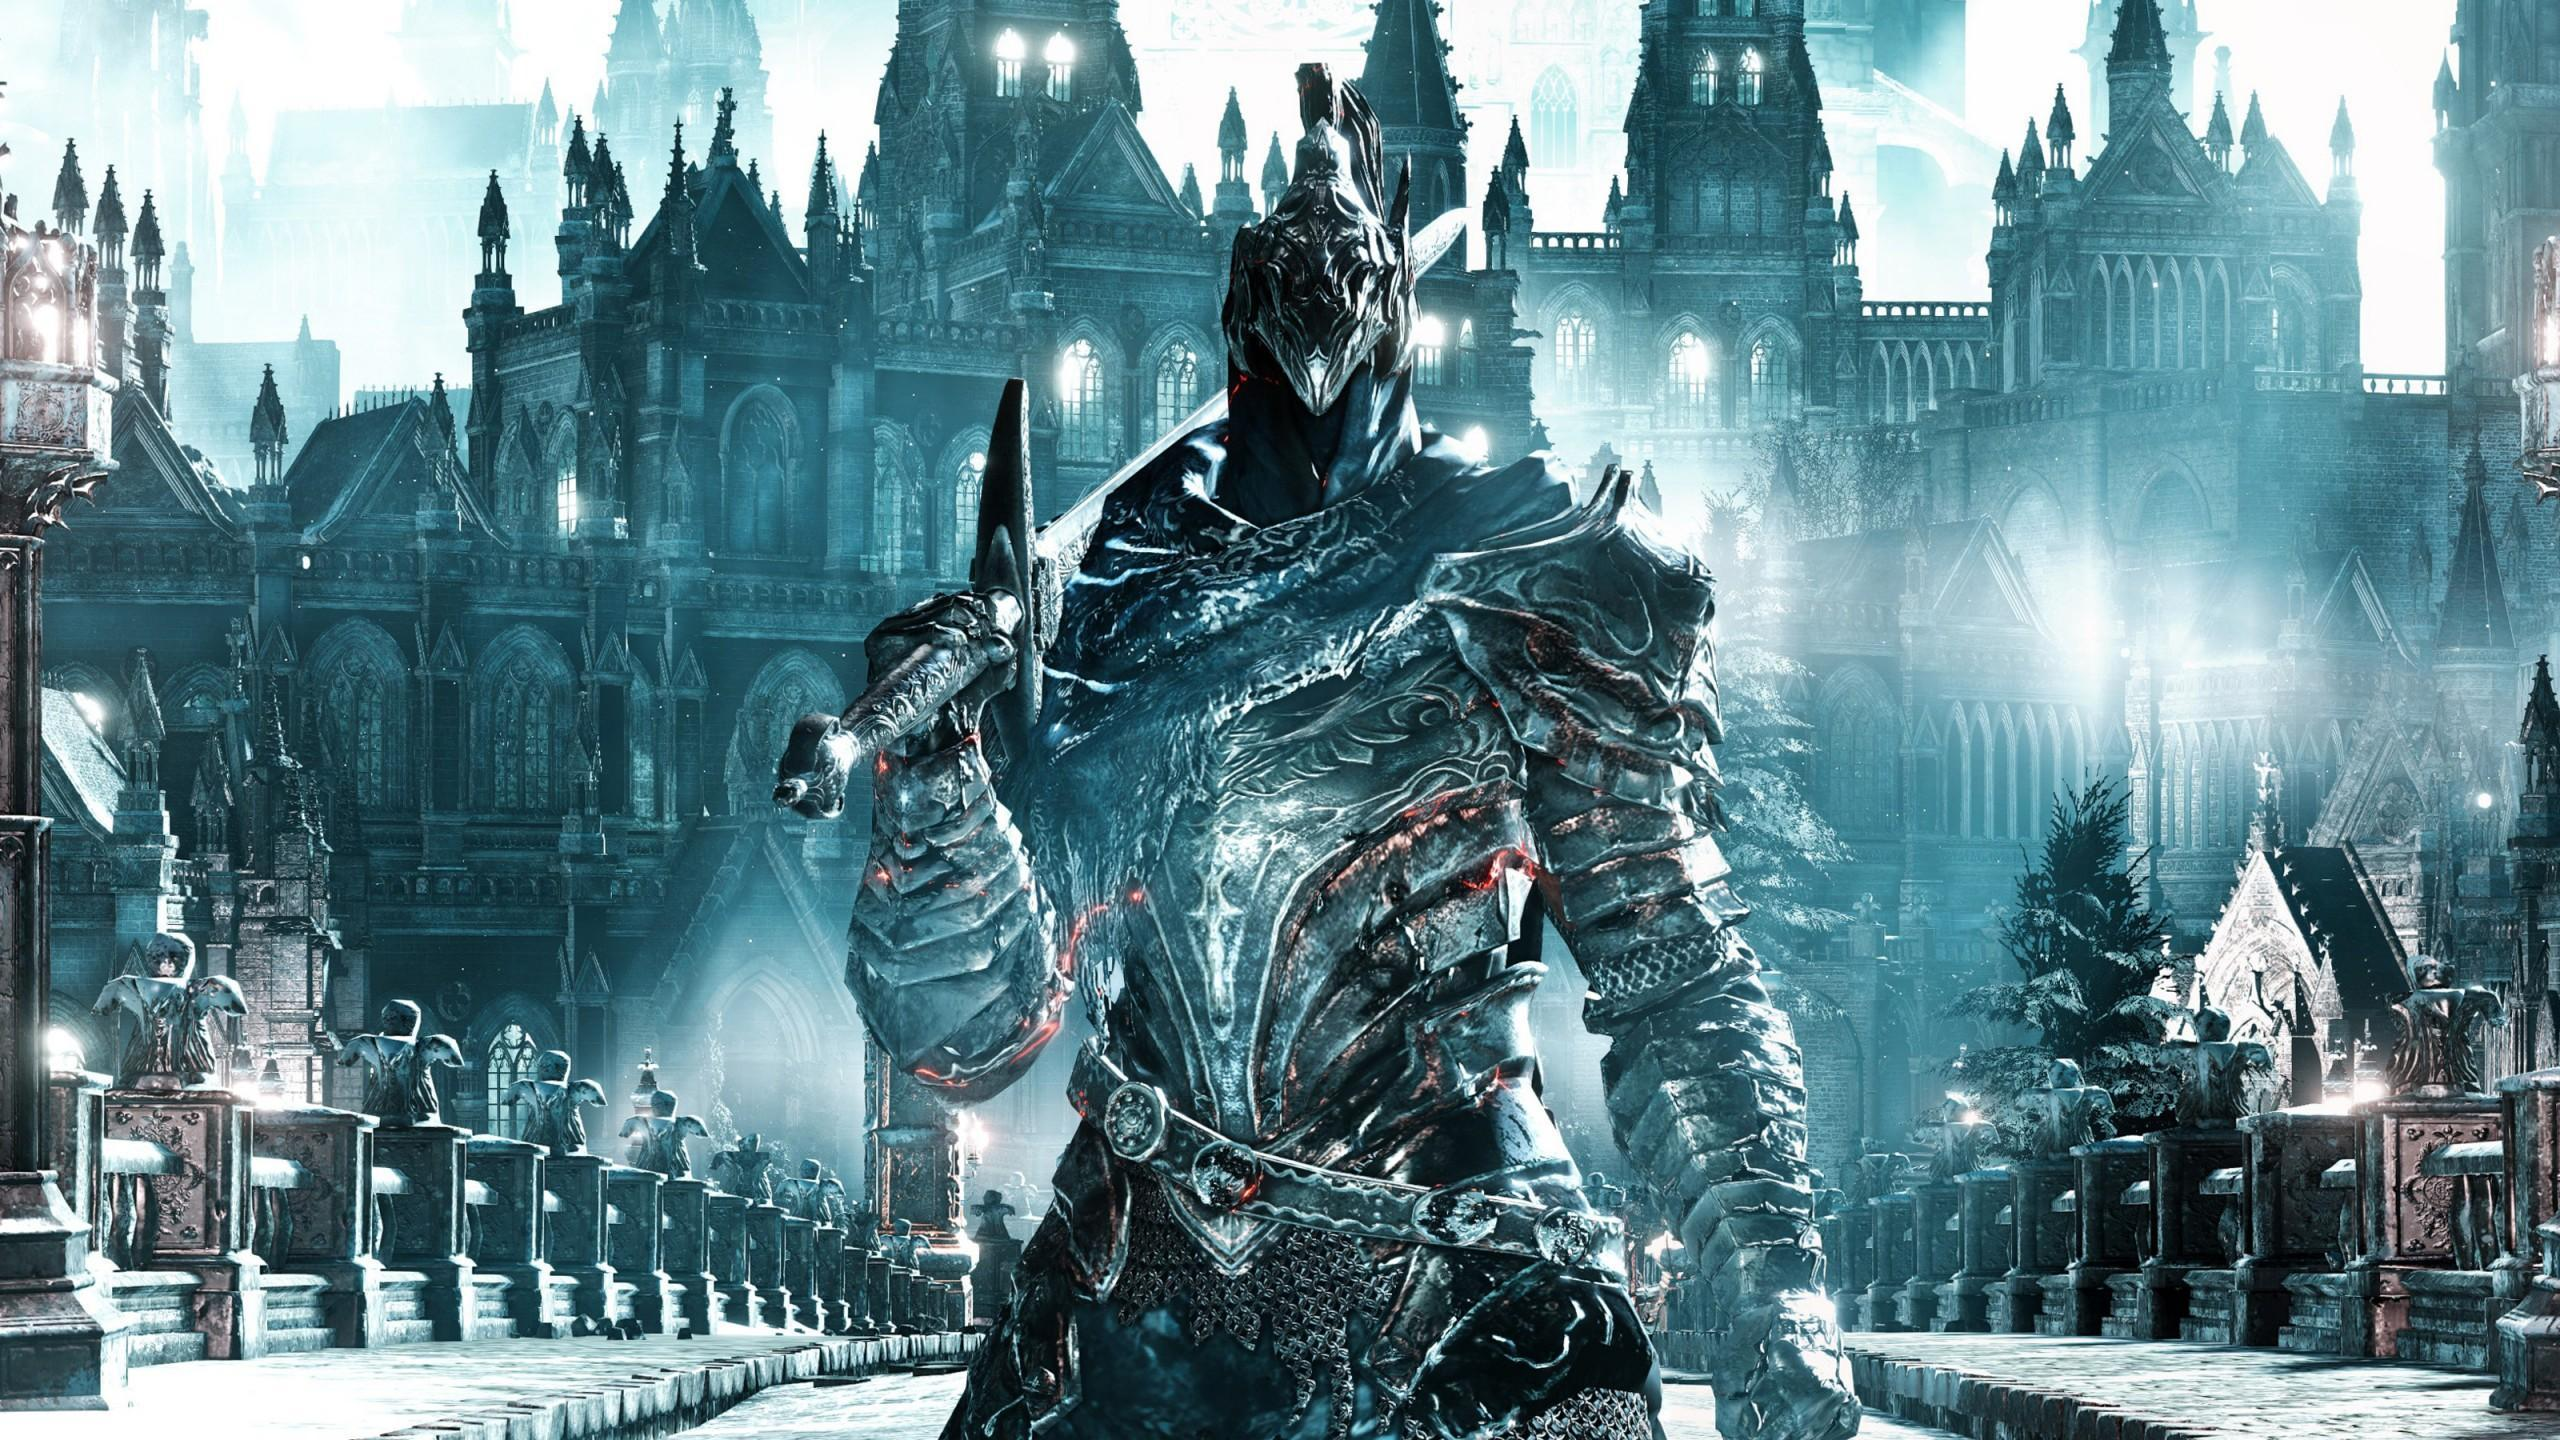 Dark Souls Wallpaper 2018 Pictures Hd Images Free For